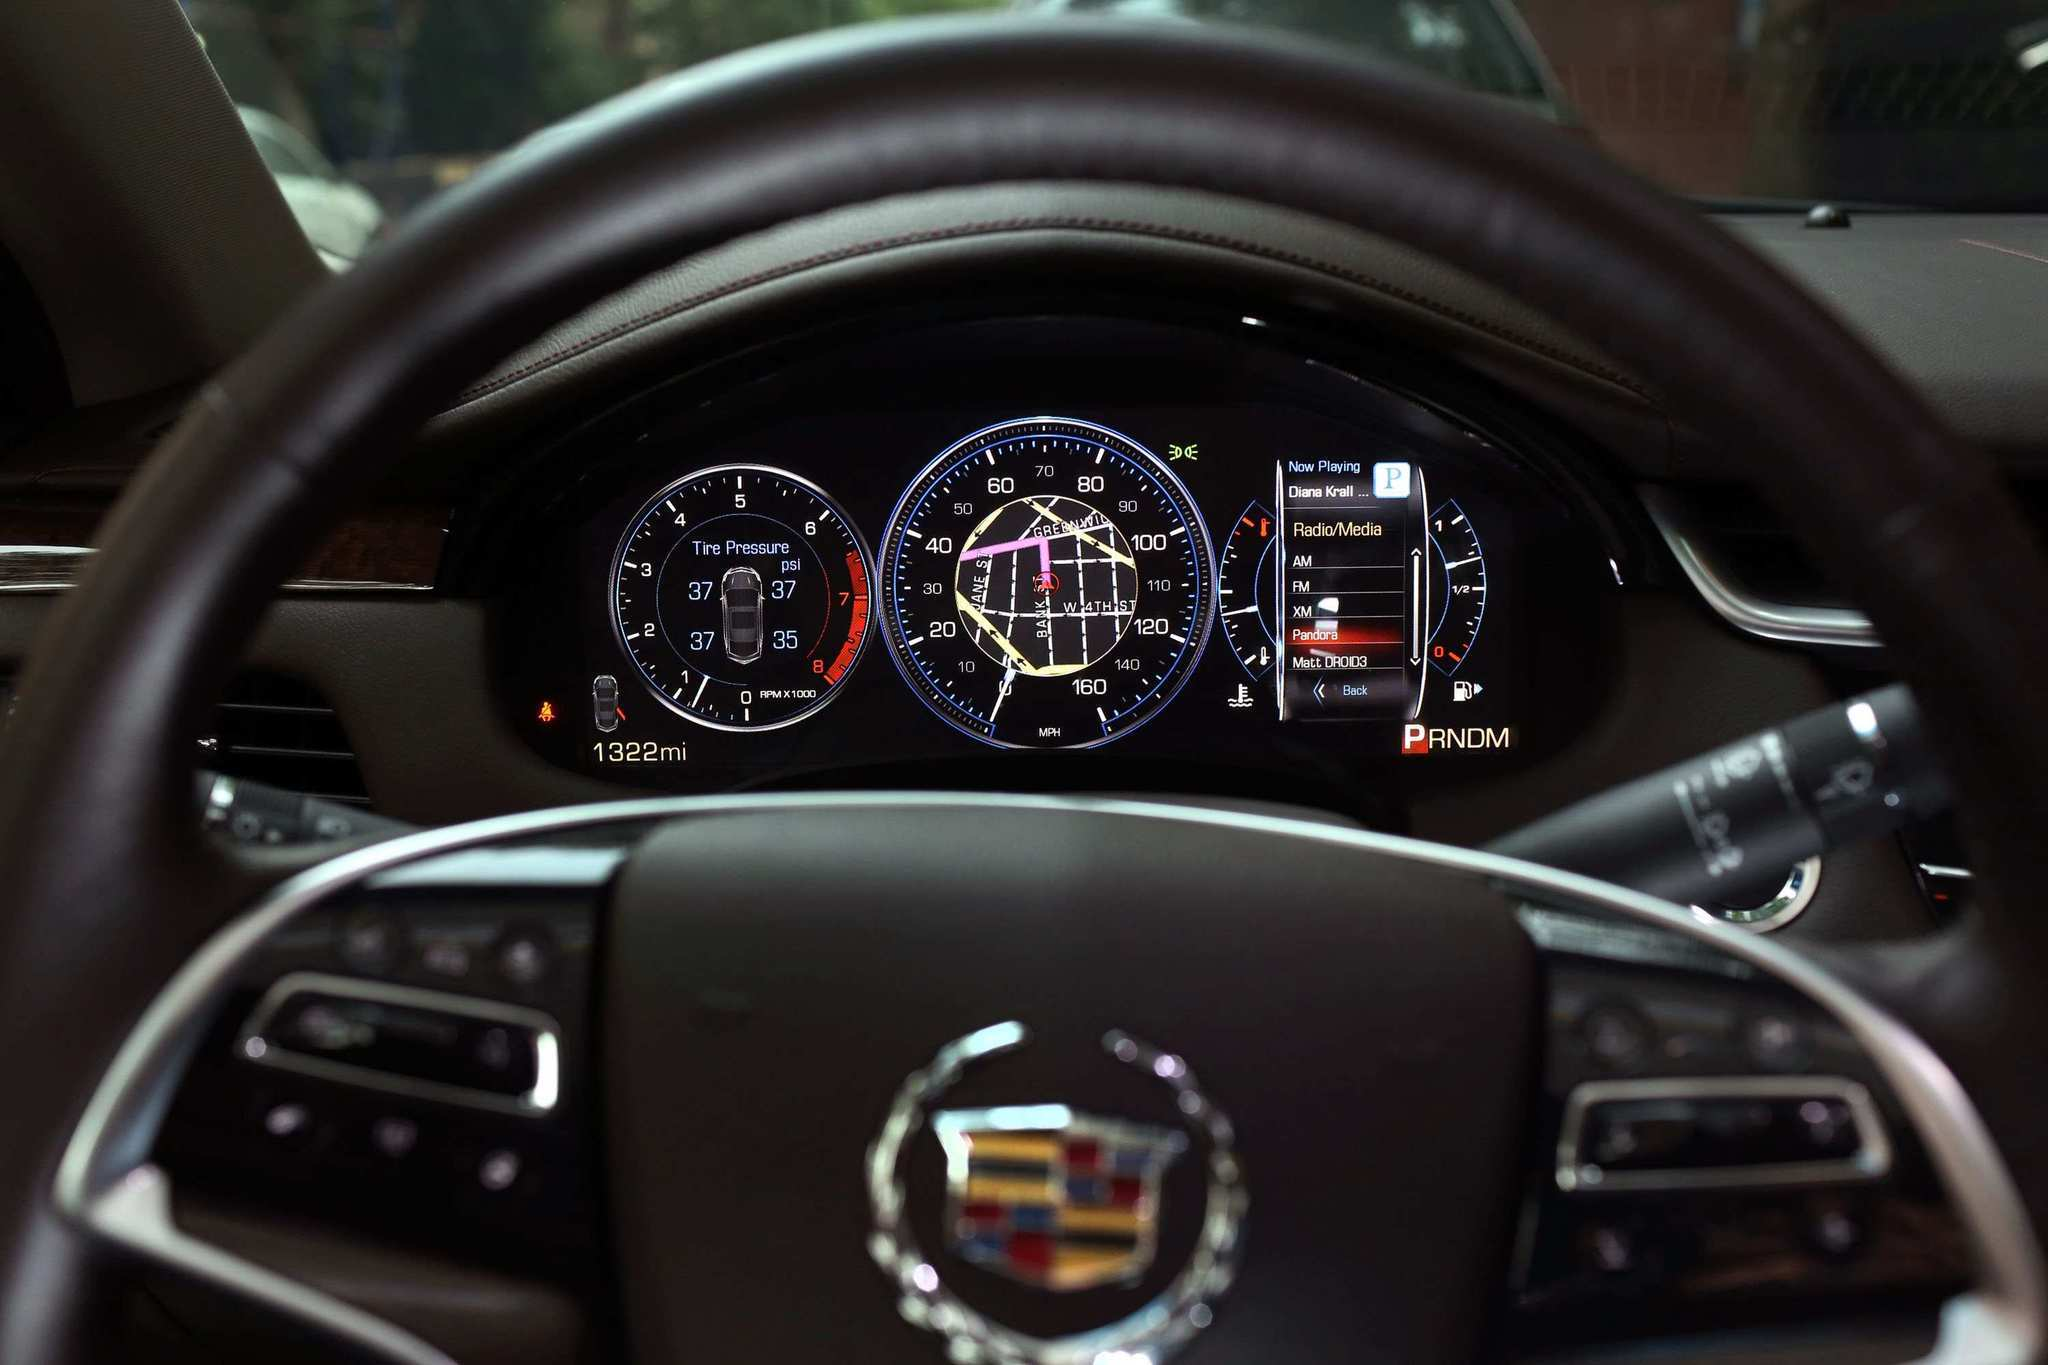 The 2013 Cadillac XTS - Navigation system